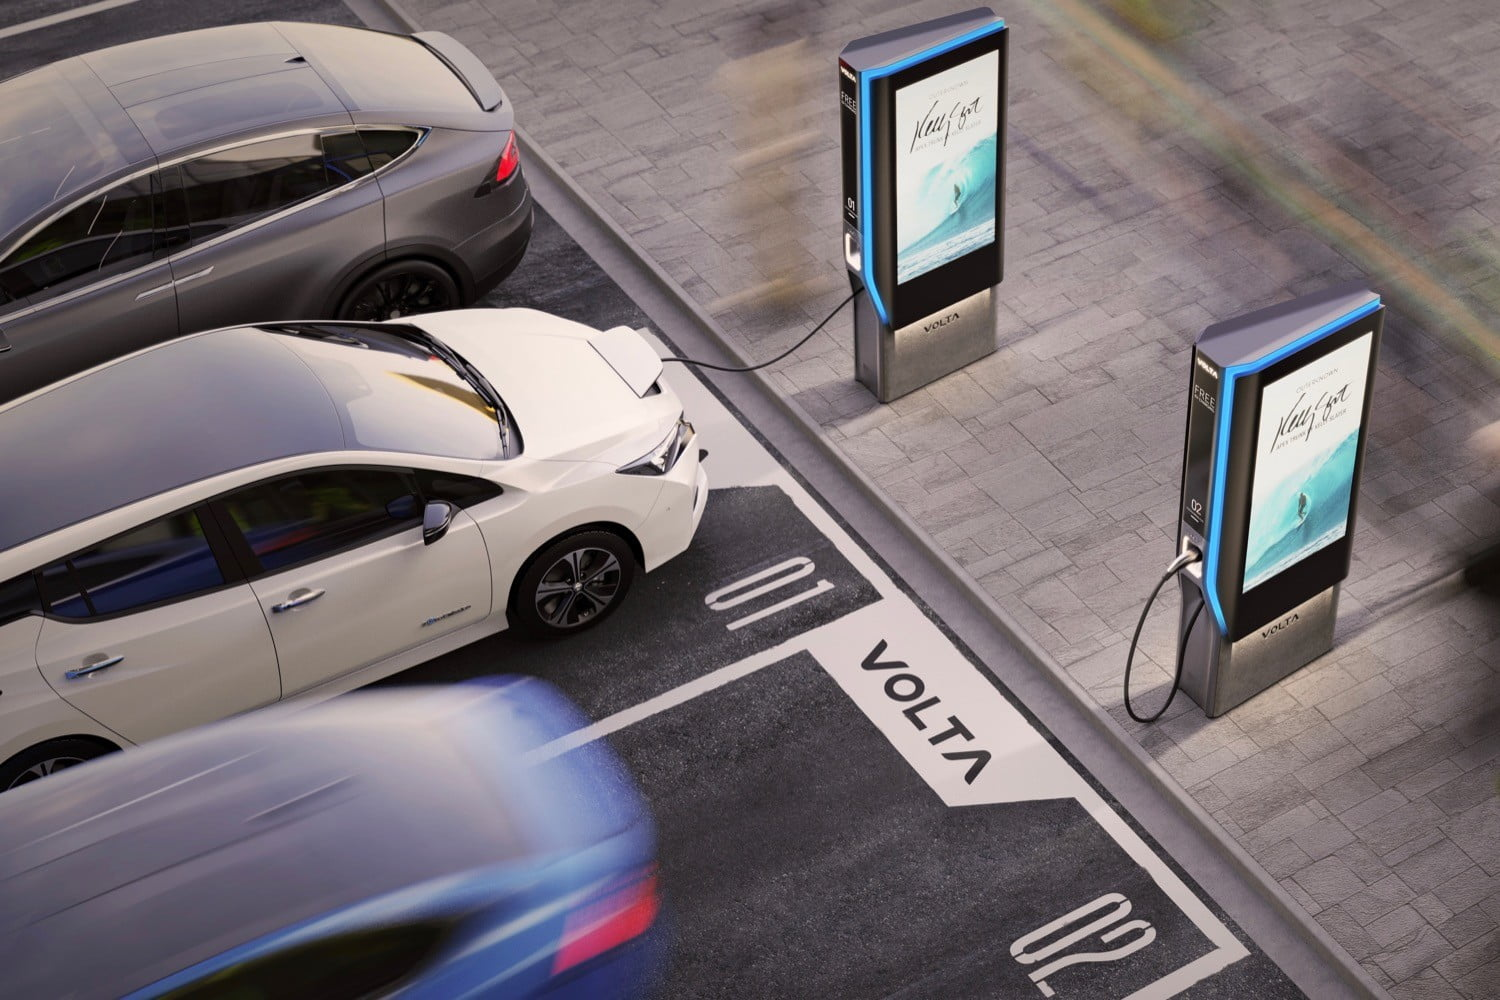 VW to install electric car fast-charging station in the Arizona